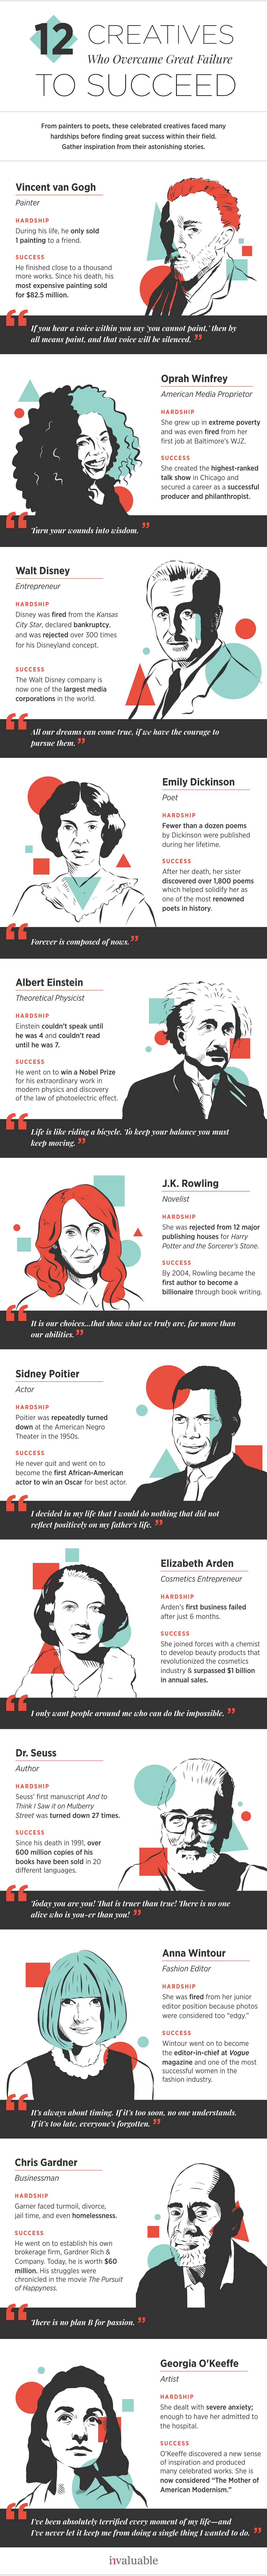 Creatives who overcame great failure to succeed